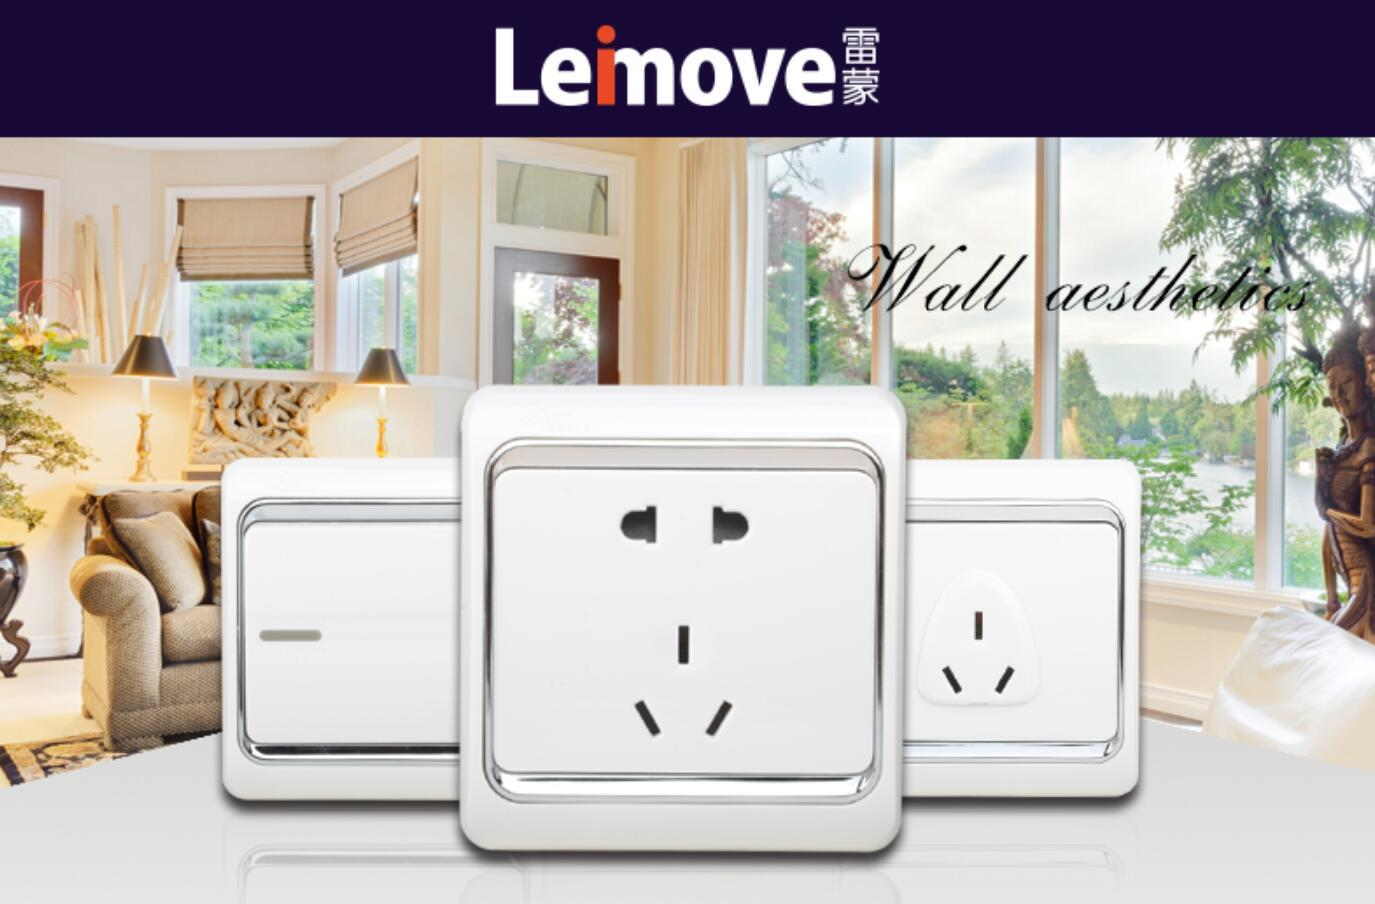 Leimove-High-quality Light Switches And Sockets | Four-position Stilt-plate Single